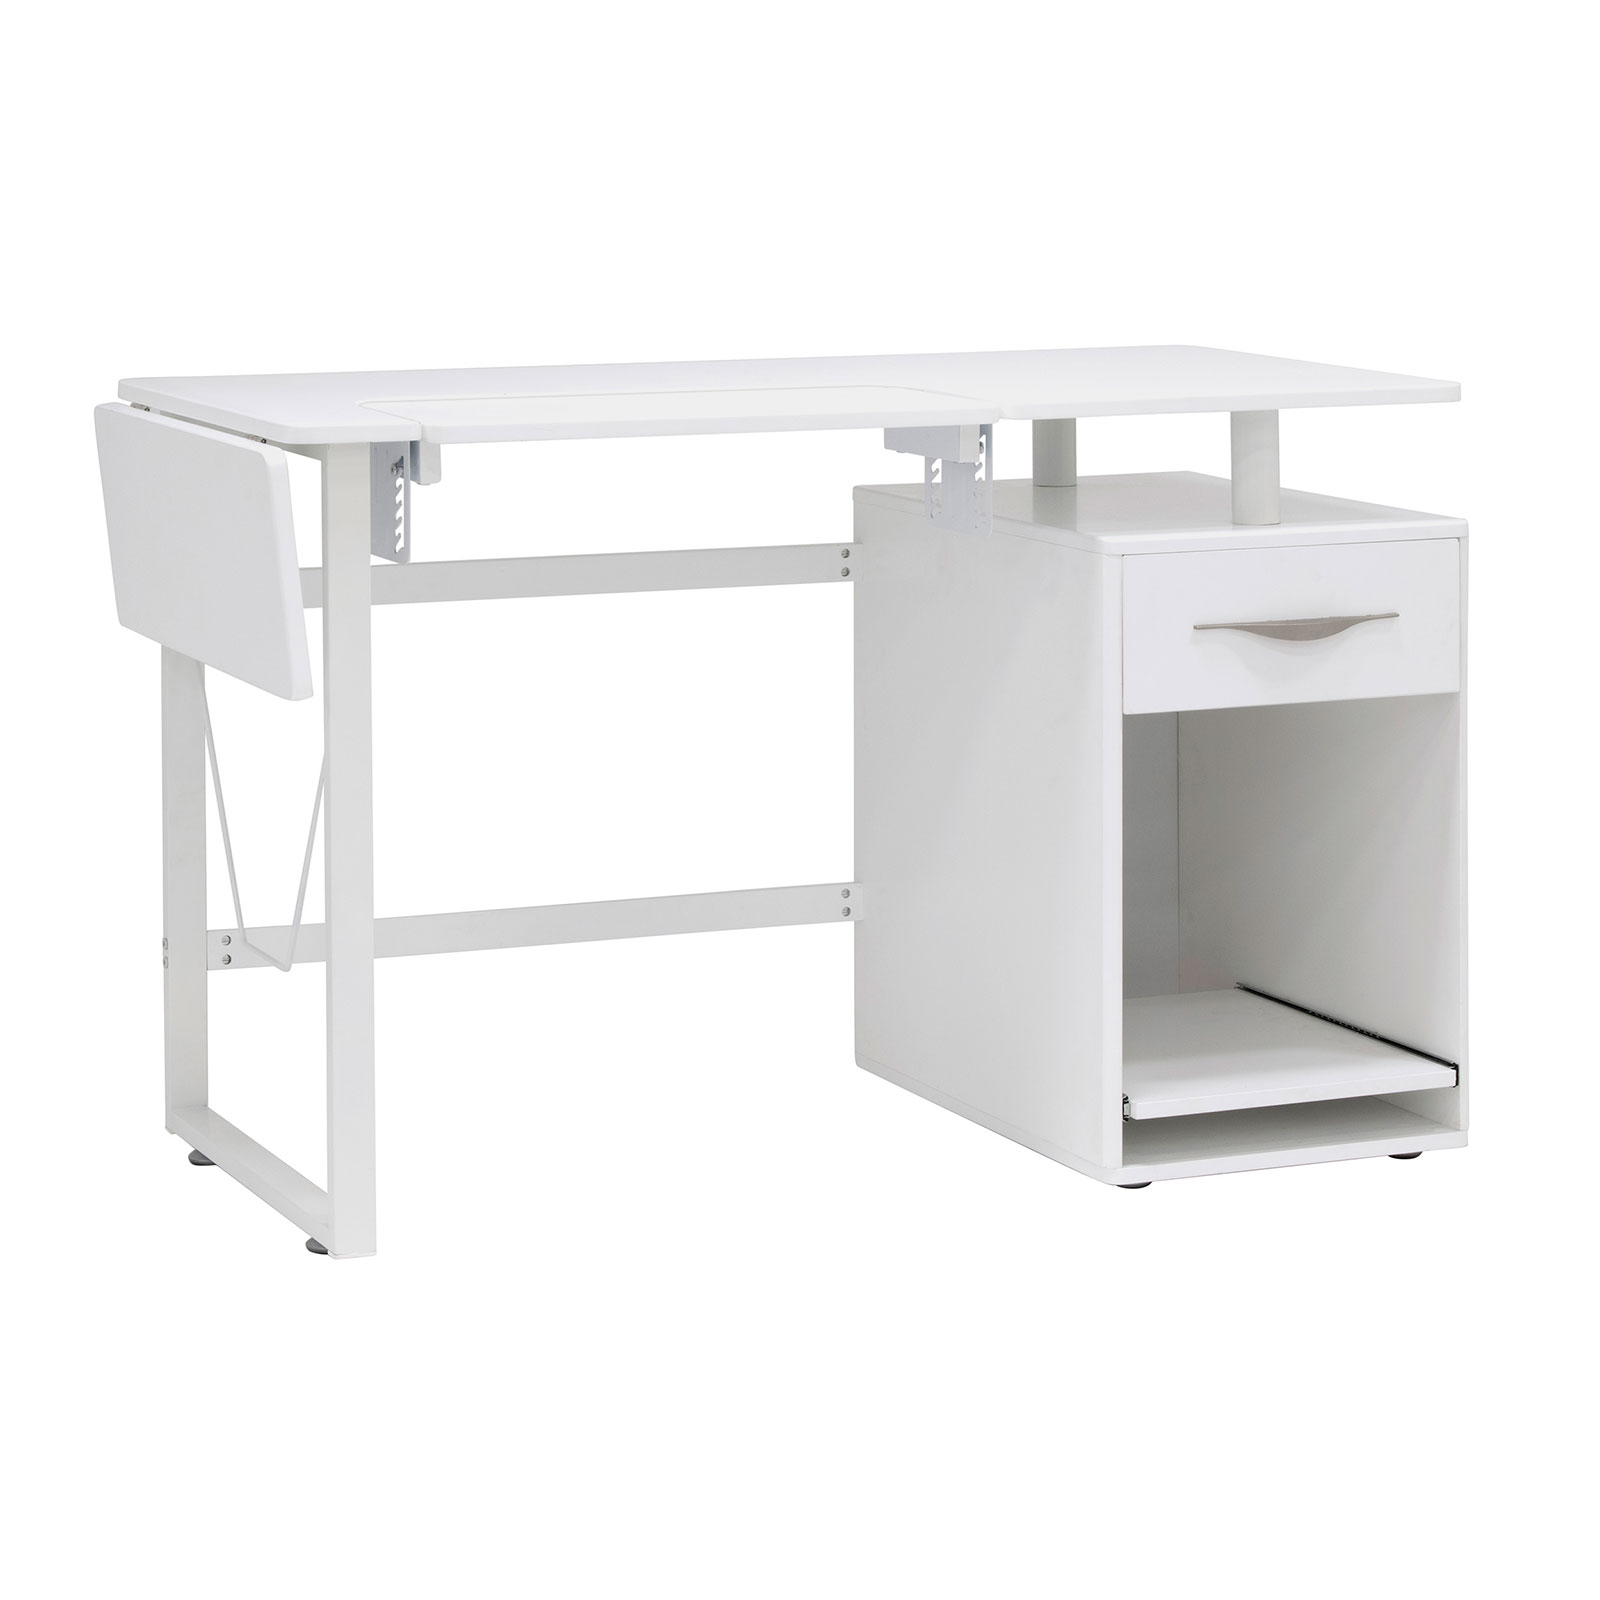 13397-Pro-Line-Sewing-Table-b